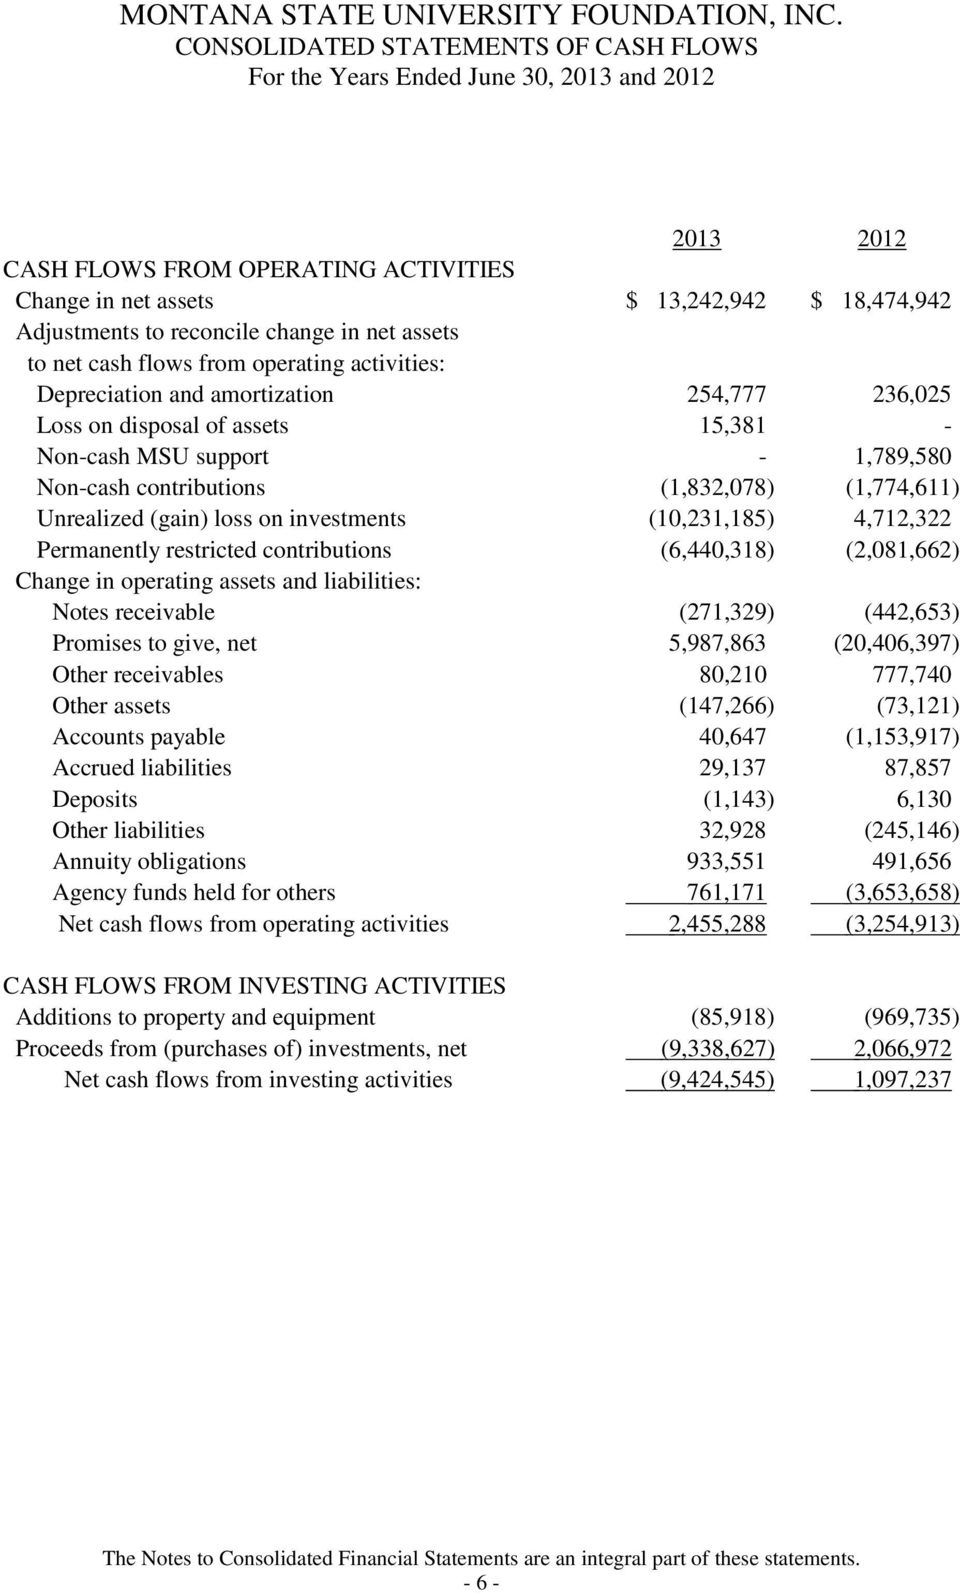 Unrealized (gain) loss on investments (10,231,185) 4,712,322 Permanently restricted contributions (6,440,318) (2,081,662) Change in operating assets and liabilities: Notes receivable (271,329)